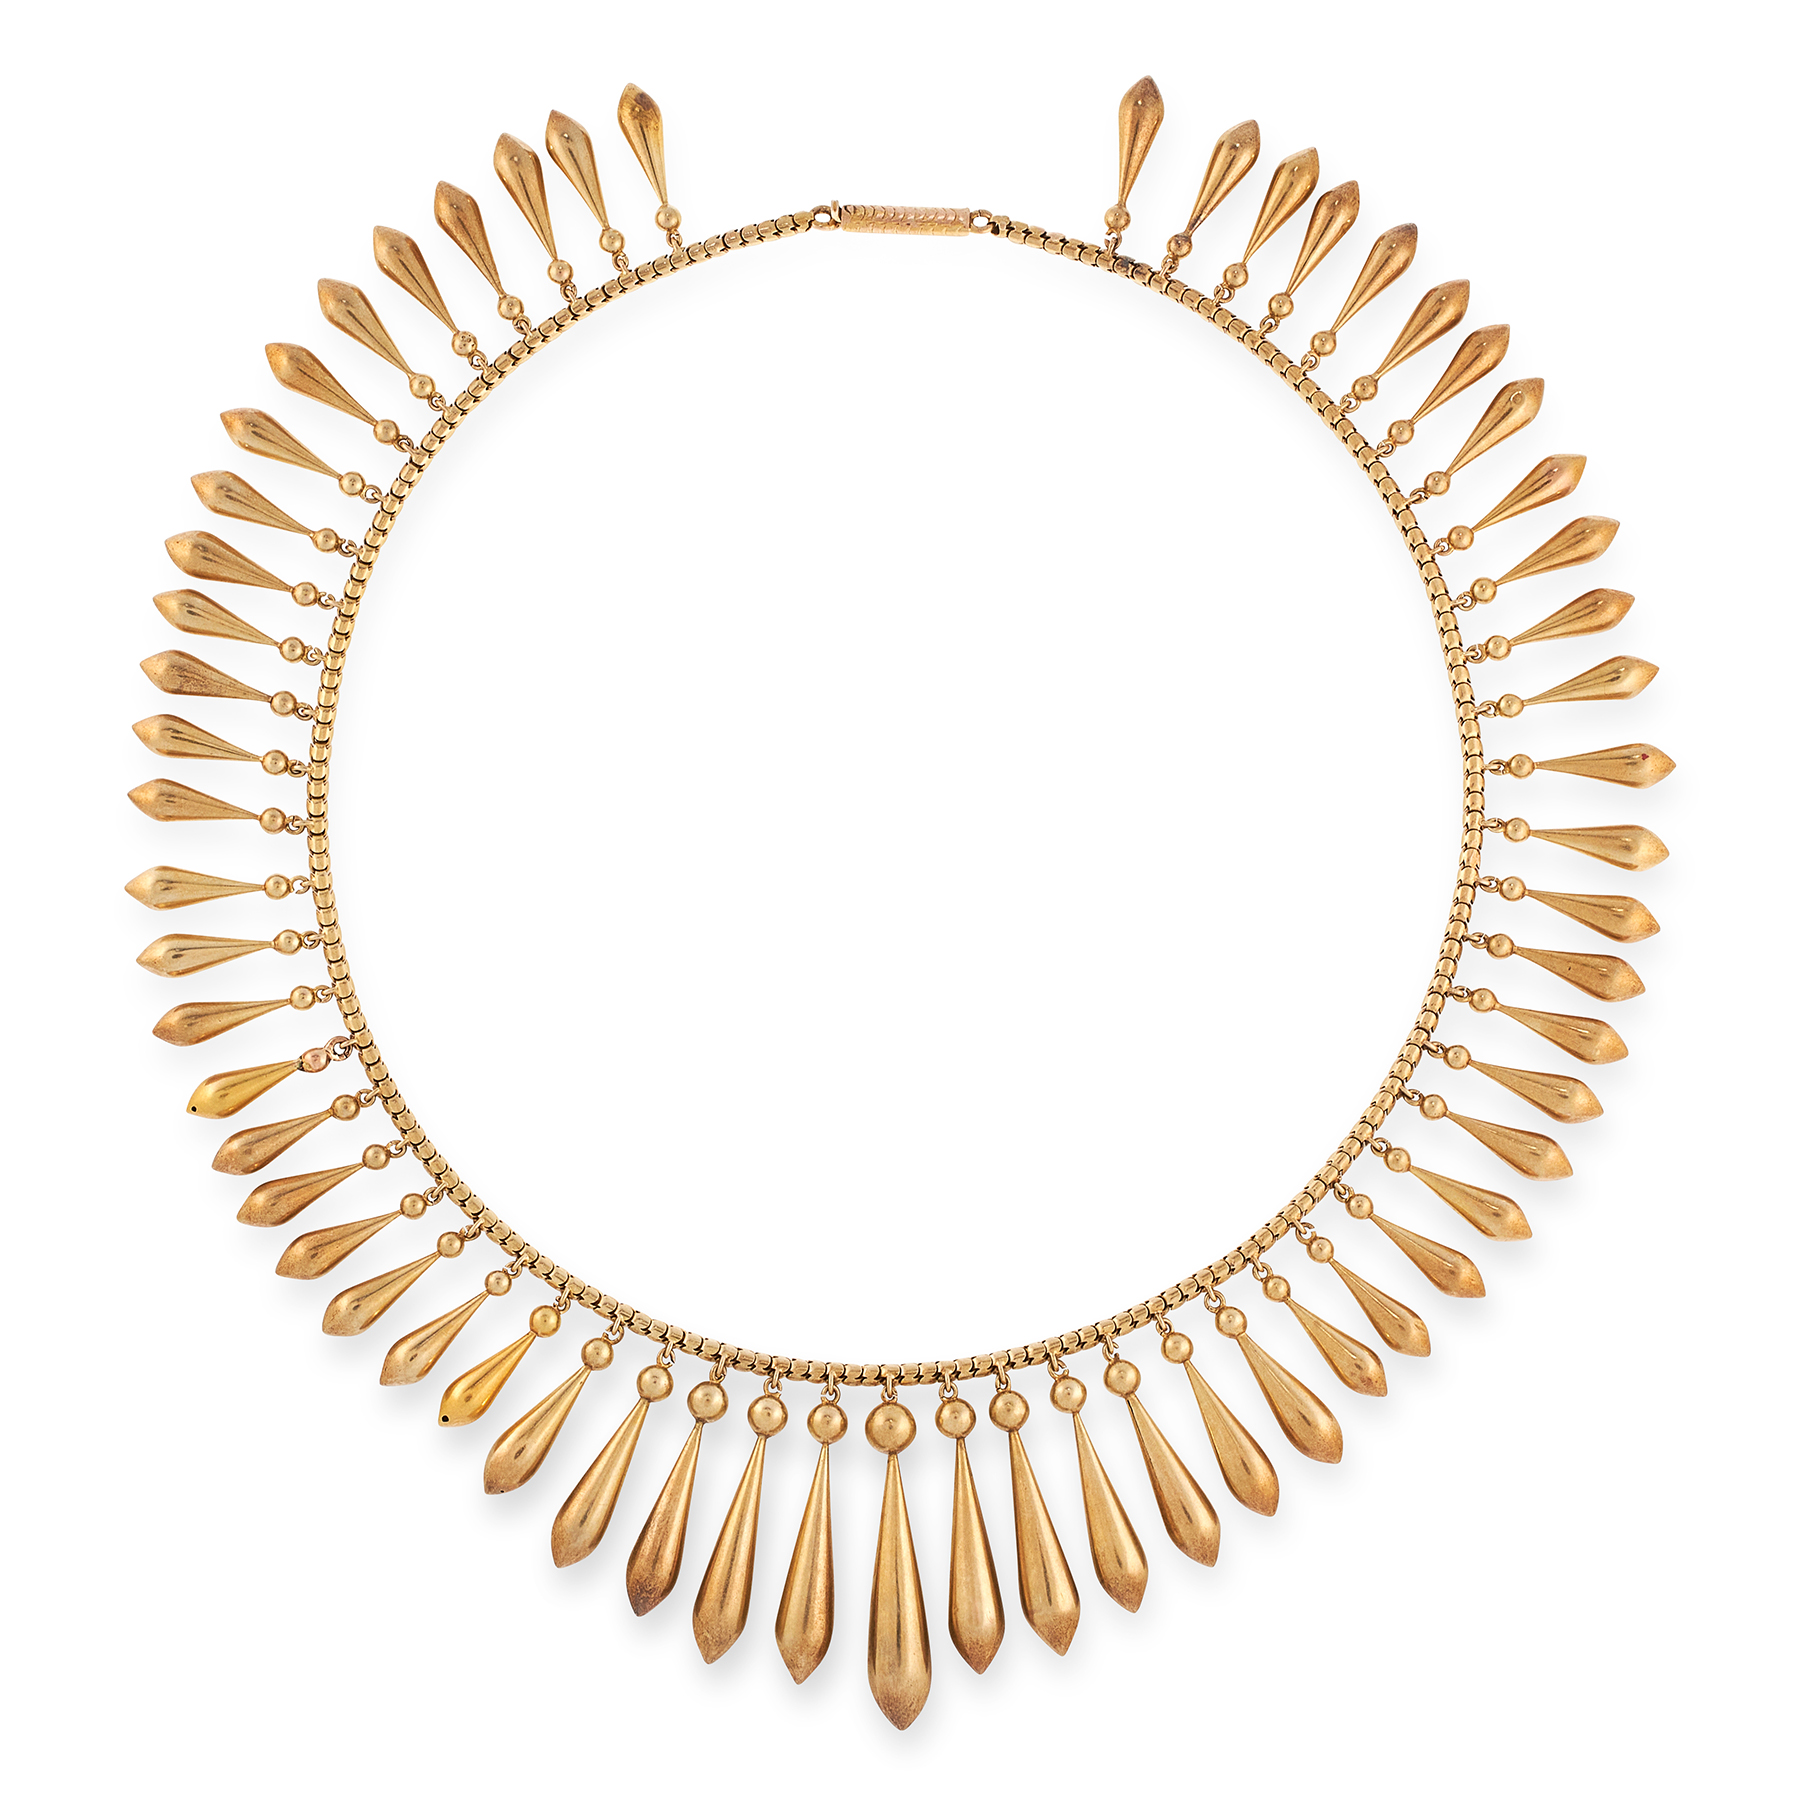 AN ANTIQUE FRINGE NECKLACE, 19TH CENTURY in yellow gold, the snake link chain suspending a series of